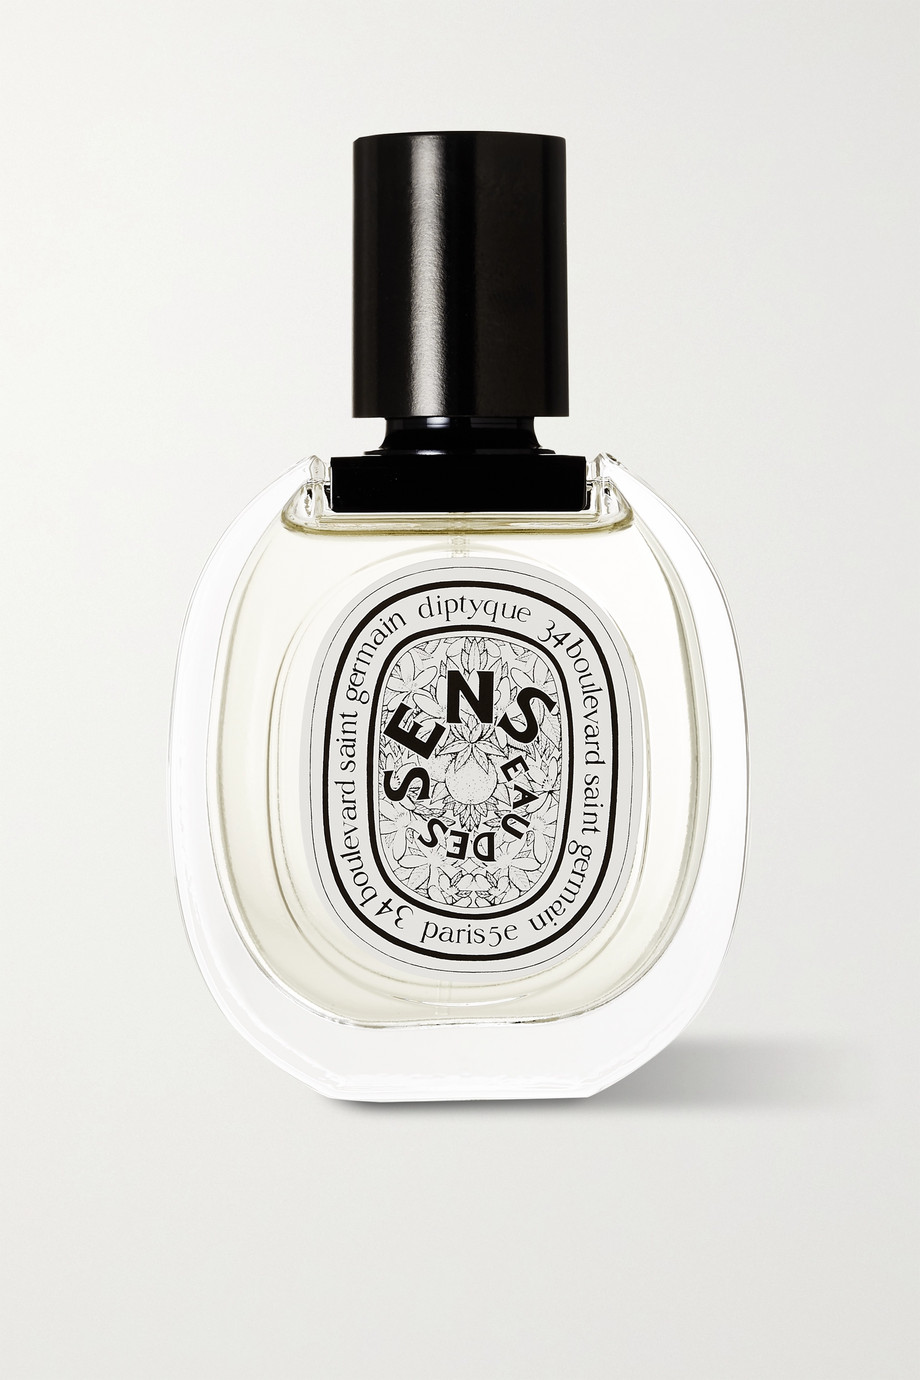 Eau Des Sens Eau De Toilette - Orange Blossom, Juniper Berries & Patchouli, 50ml, by Diptyque